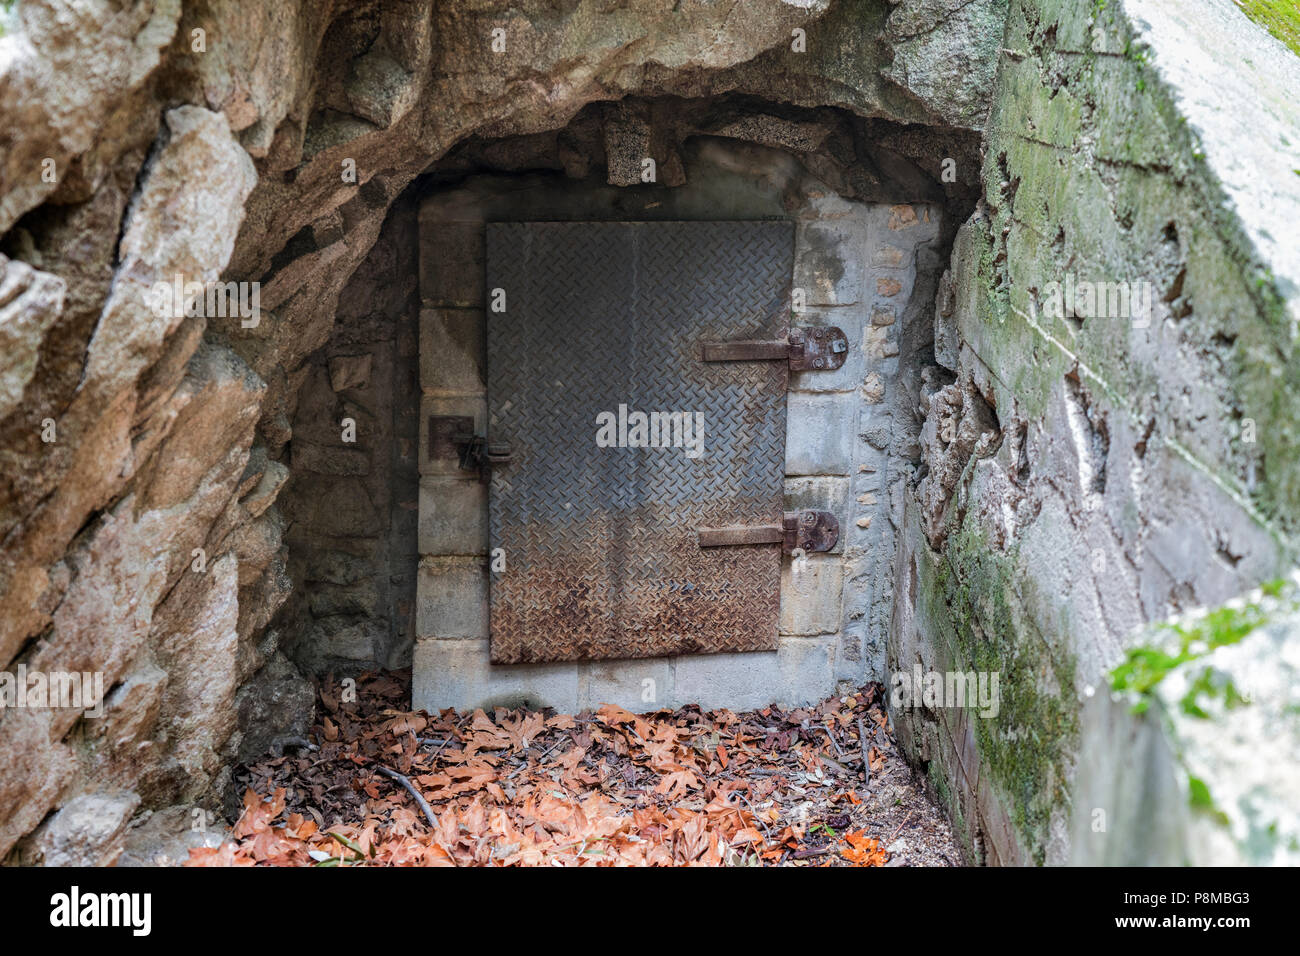 Old mine entrance metal door in the Angeles National Forest area of the popular San Gabriel Mountains above LA and Pasadena California. - Stock Image